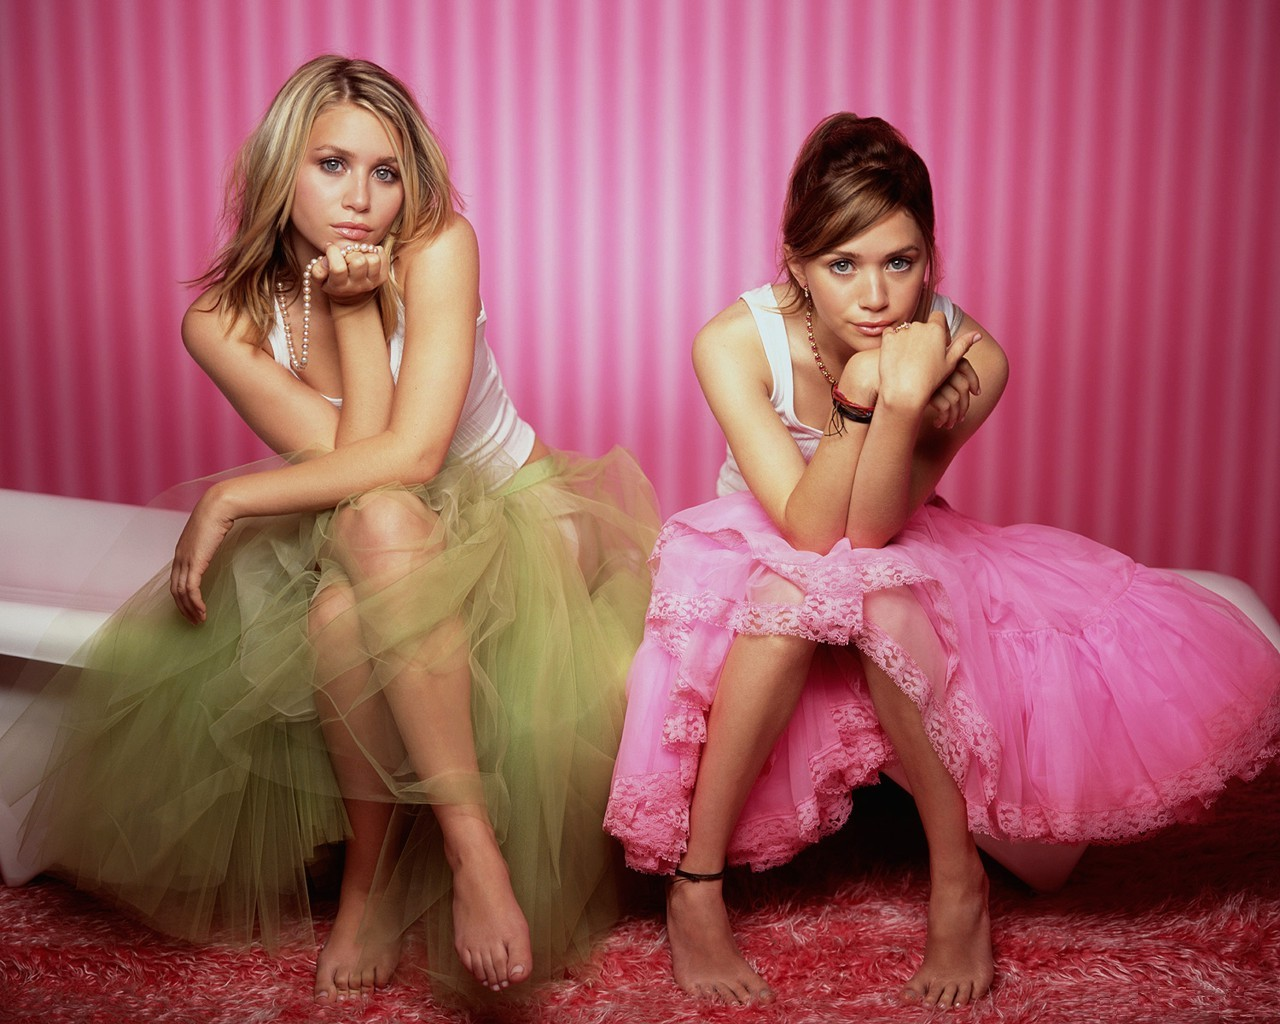 http://1.bp.blogspot.com/_k0qcqtNtpOY/S9RjPU8Bn0I/AAAAAAAAMrI/WmsekJ8i2mg/s1600/Mary_-_Kate_and_Ashley_Olsen.jpg